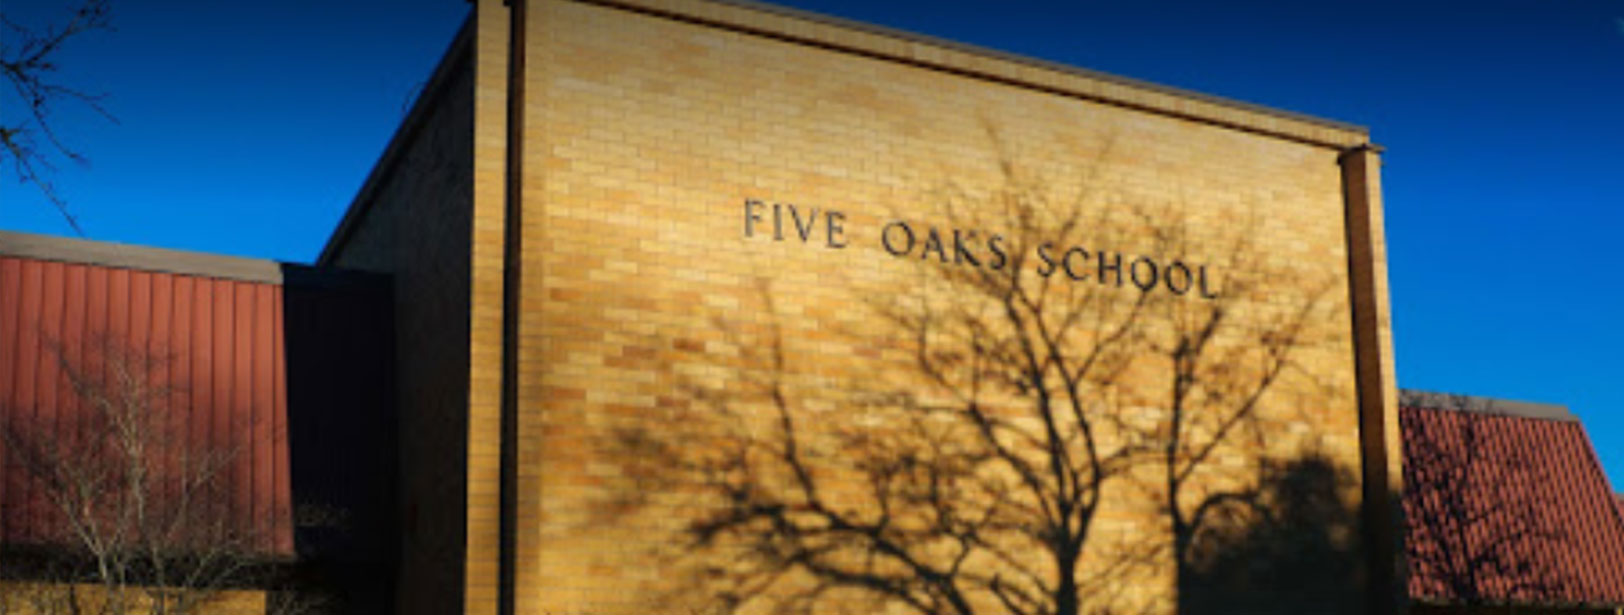 Five Oaks Middle School